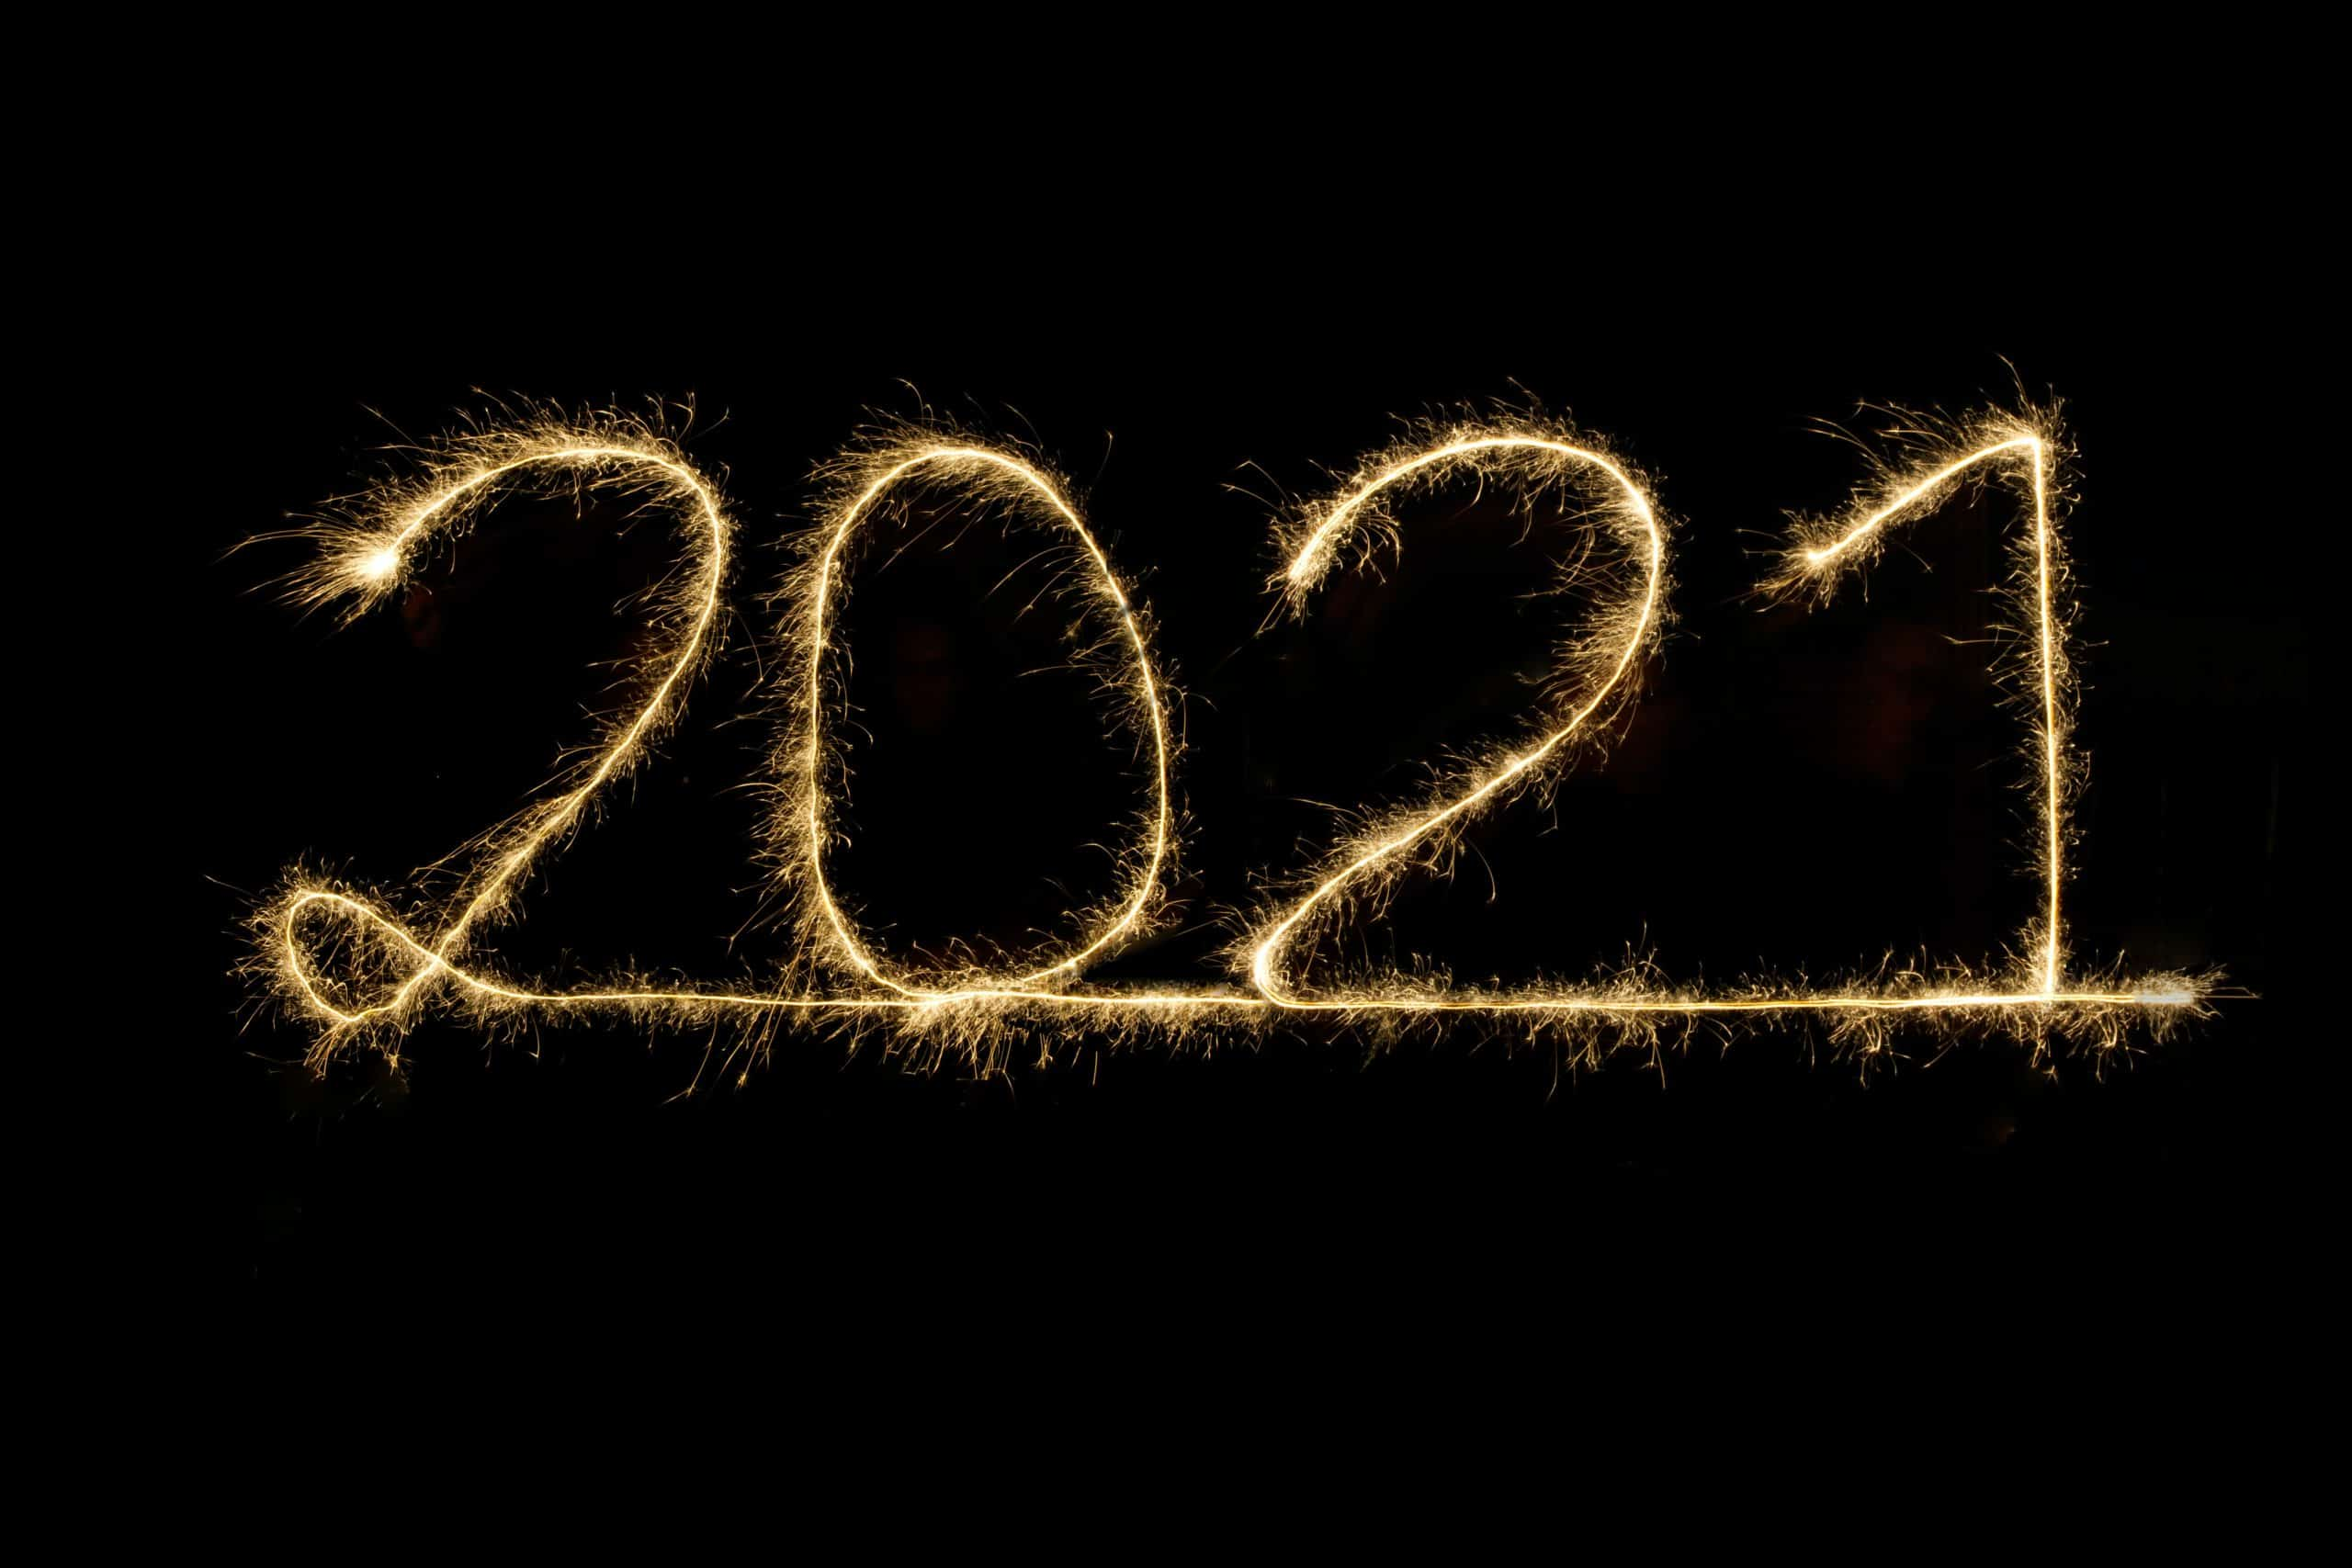 2021 is spelled out in fireworks.